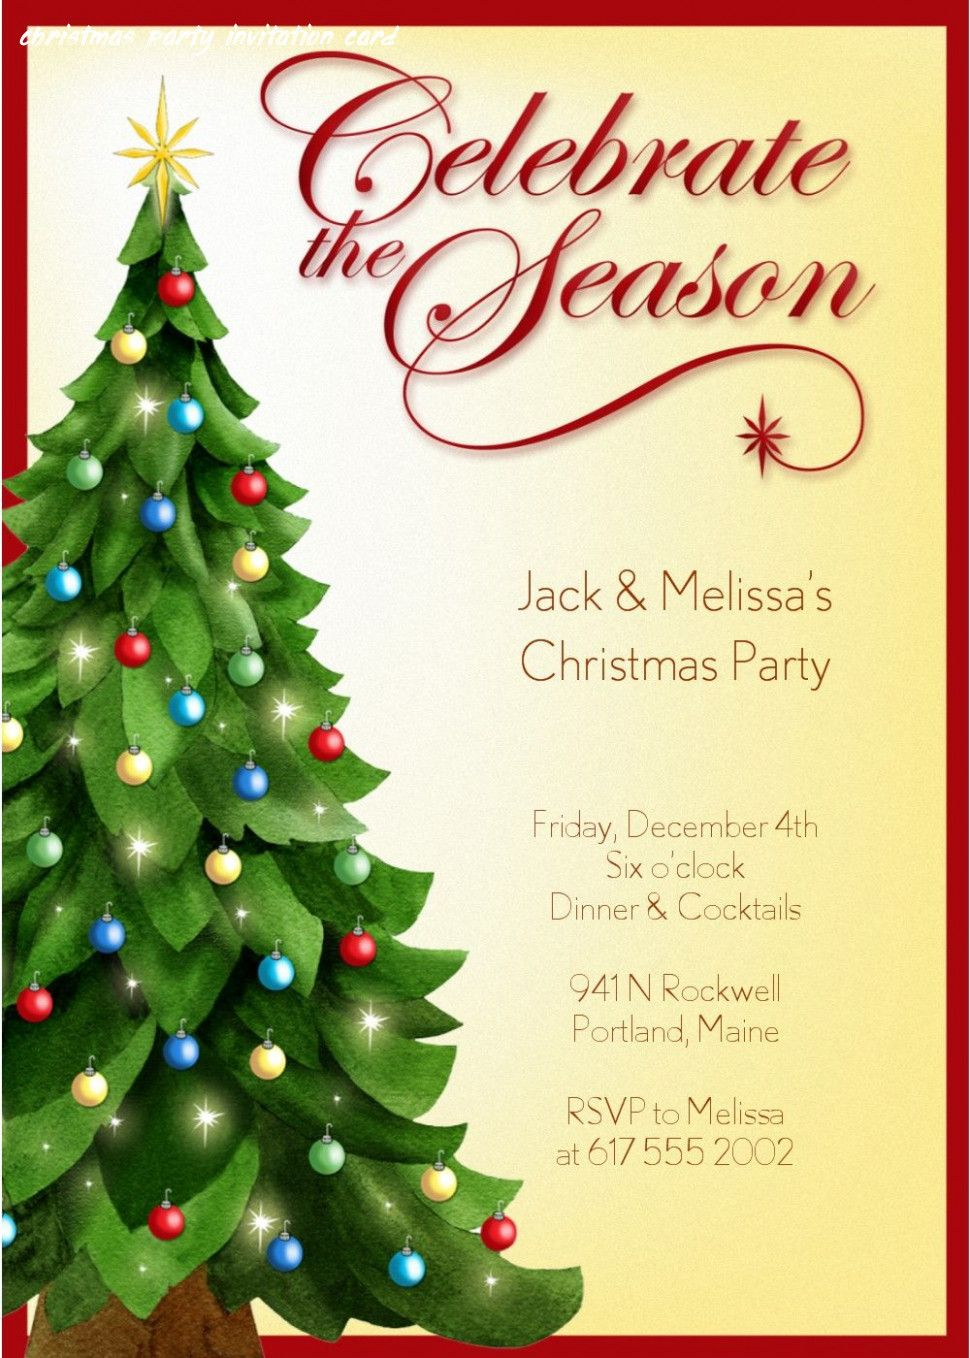 Christmas Party Invitation Template Christmas Invitations Template Free Christmas Invitation Templates Christmas Party Invitation Template